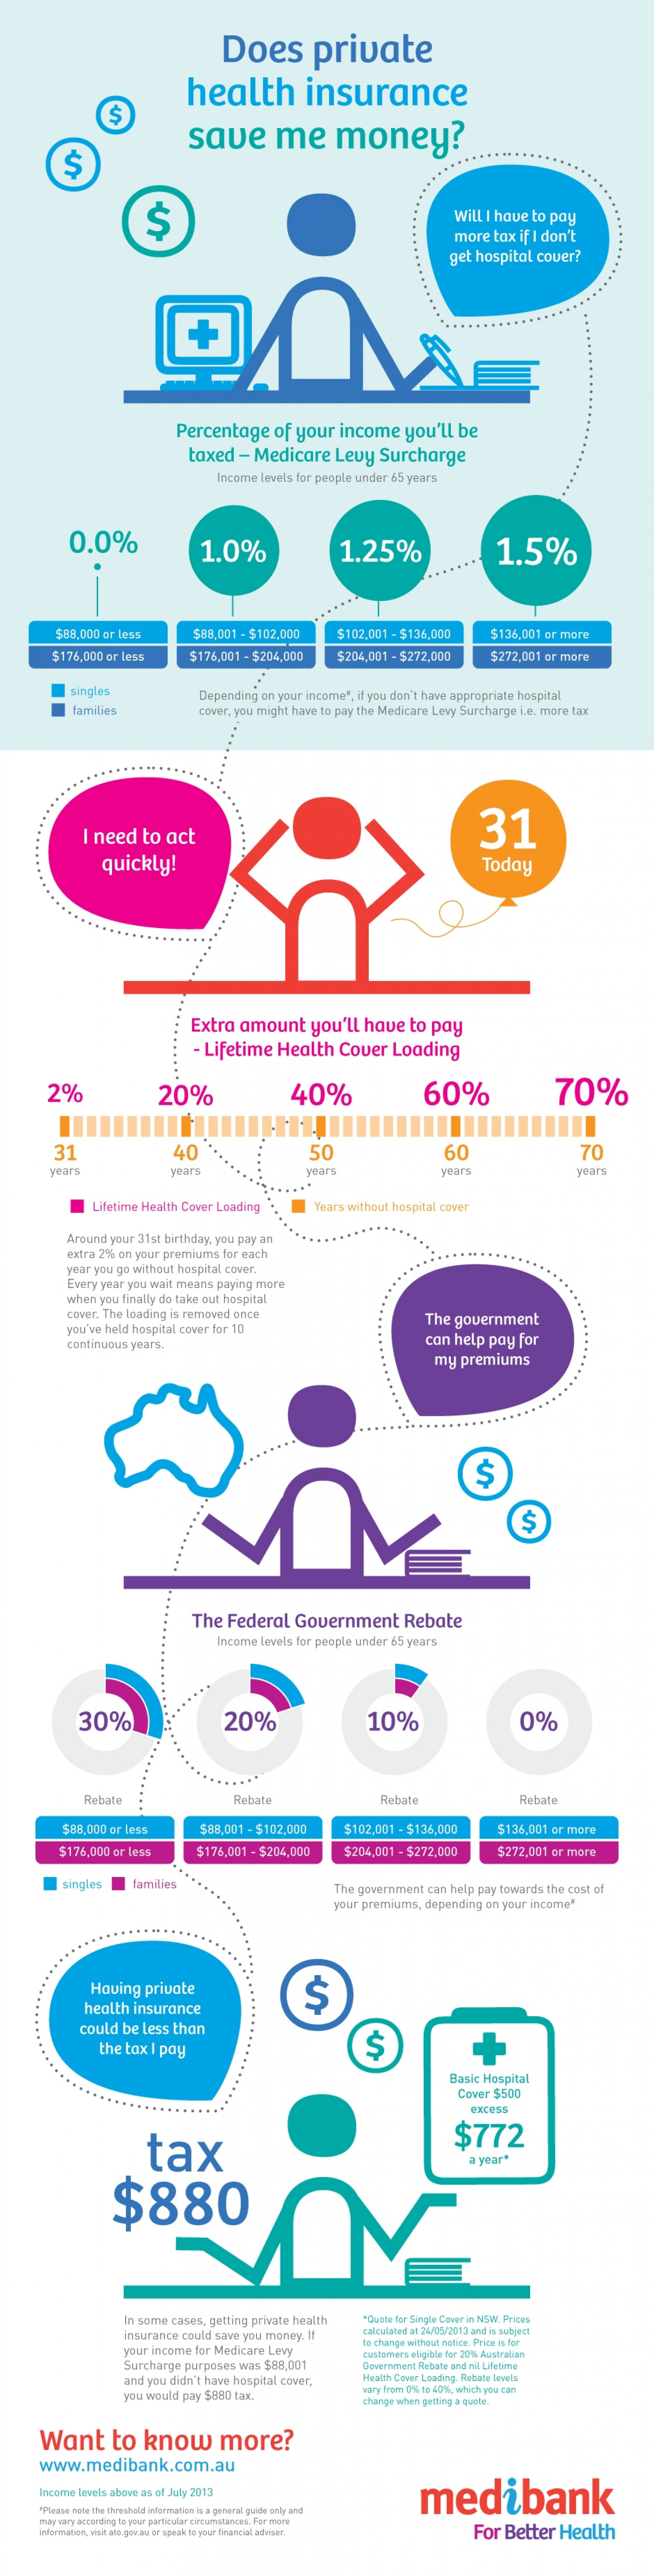 Does private health insurance save you money? Infographic